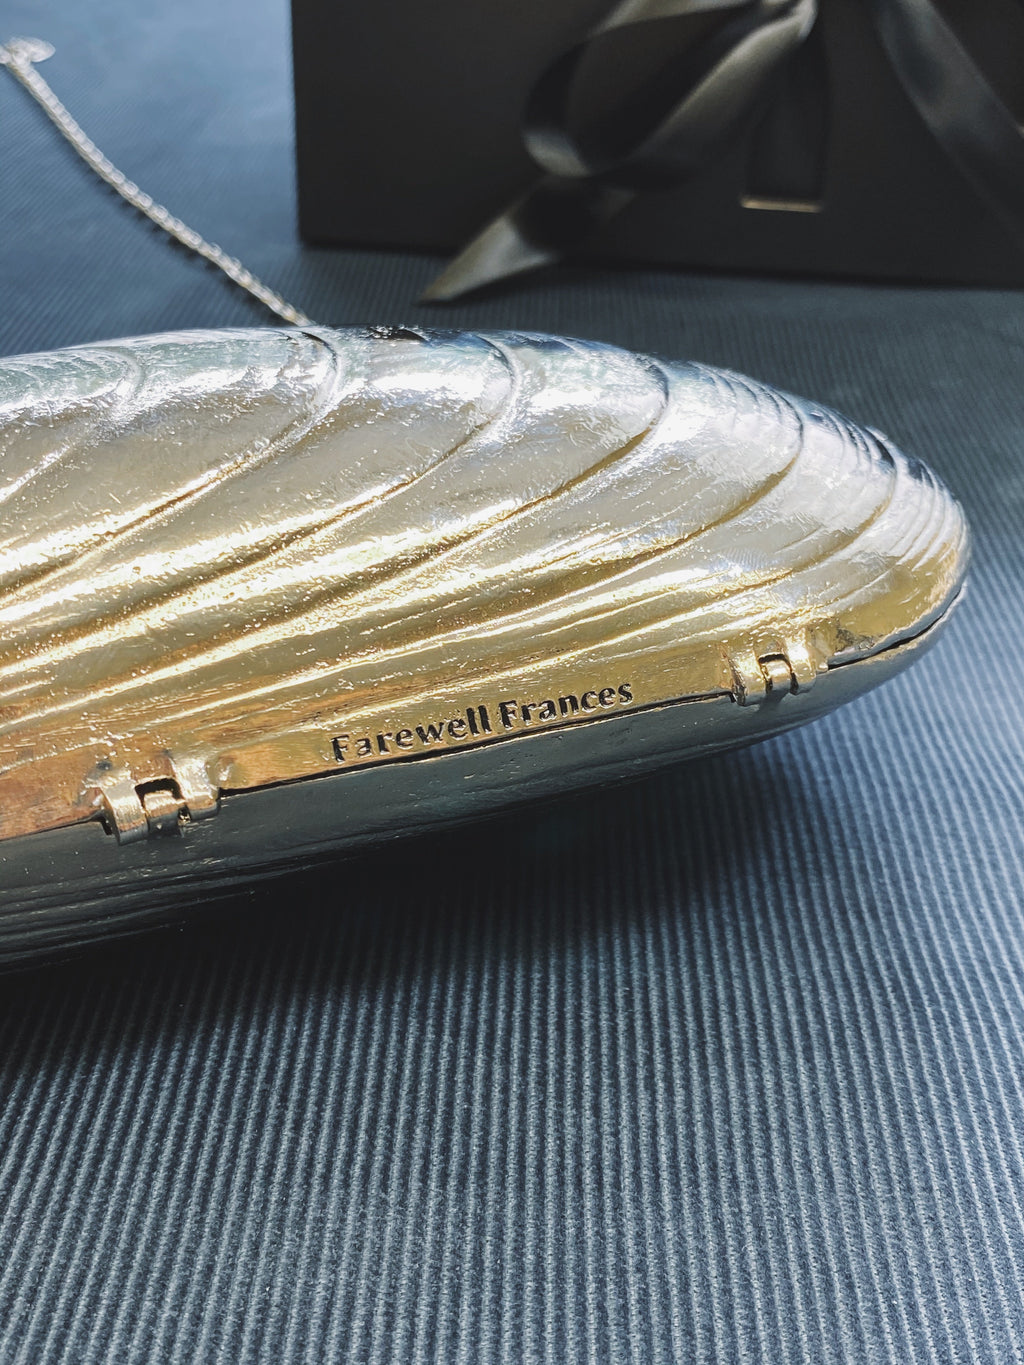 Mussel Shell Purse - Farewell Frances